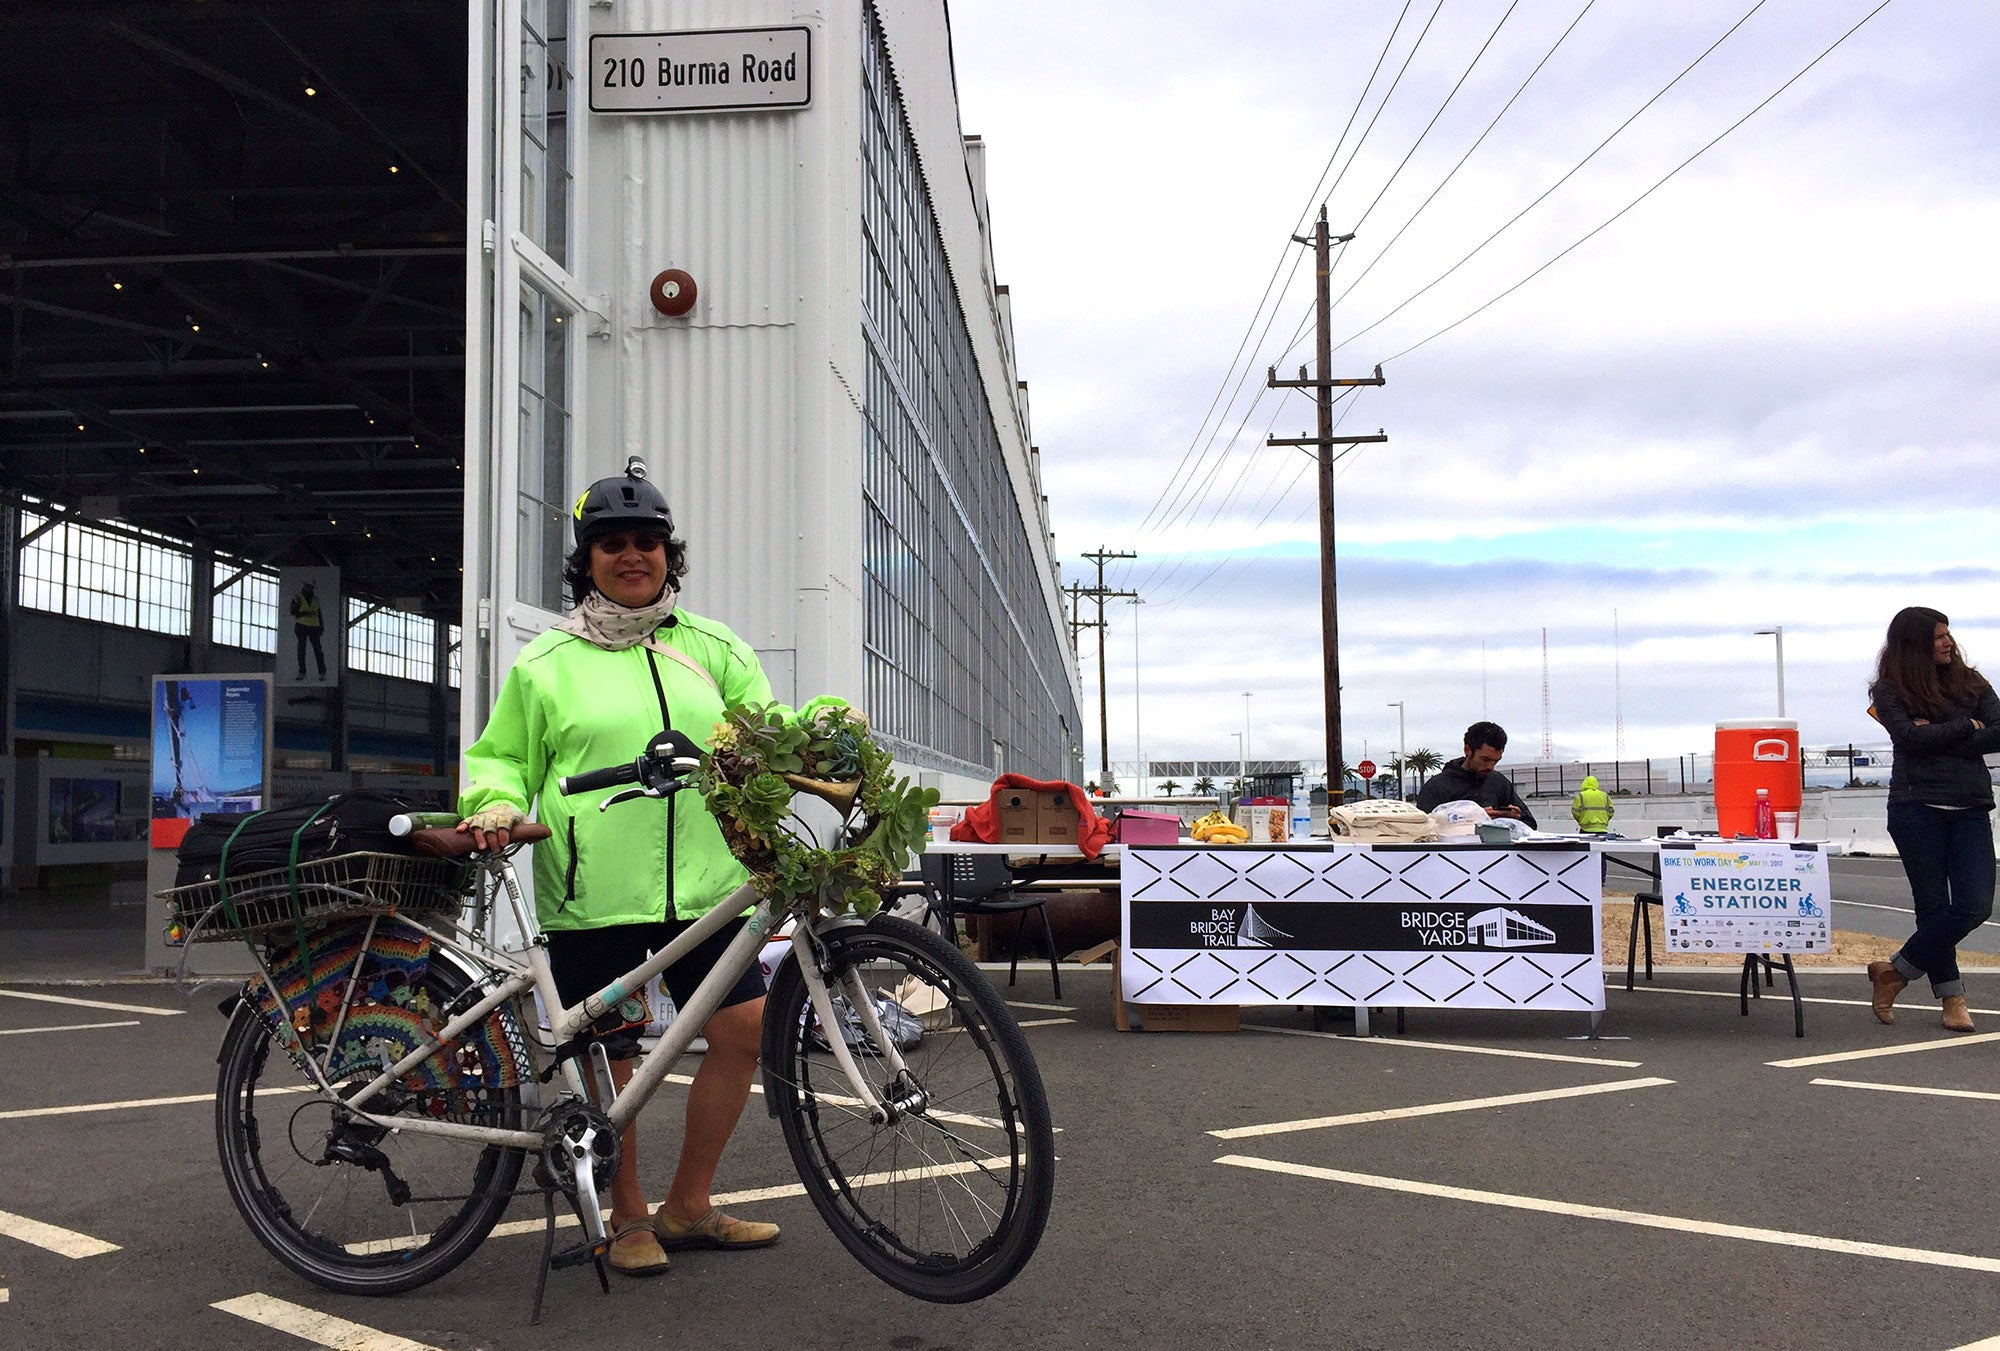 Alameda County's Bike Commuter of the Year from 2013, Janie Pinterits, at the Bridge Yard Energizer Station